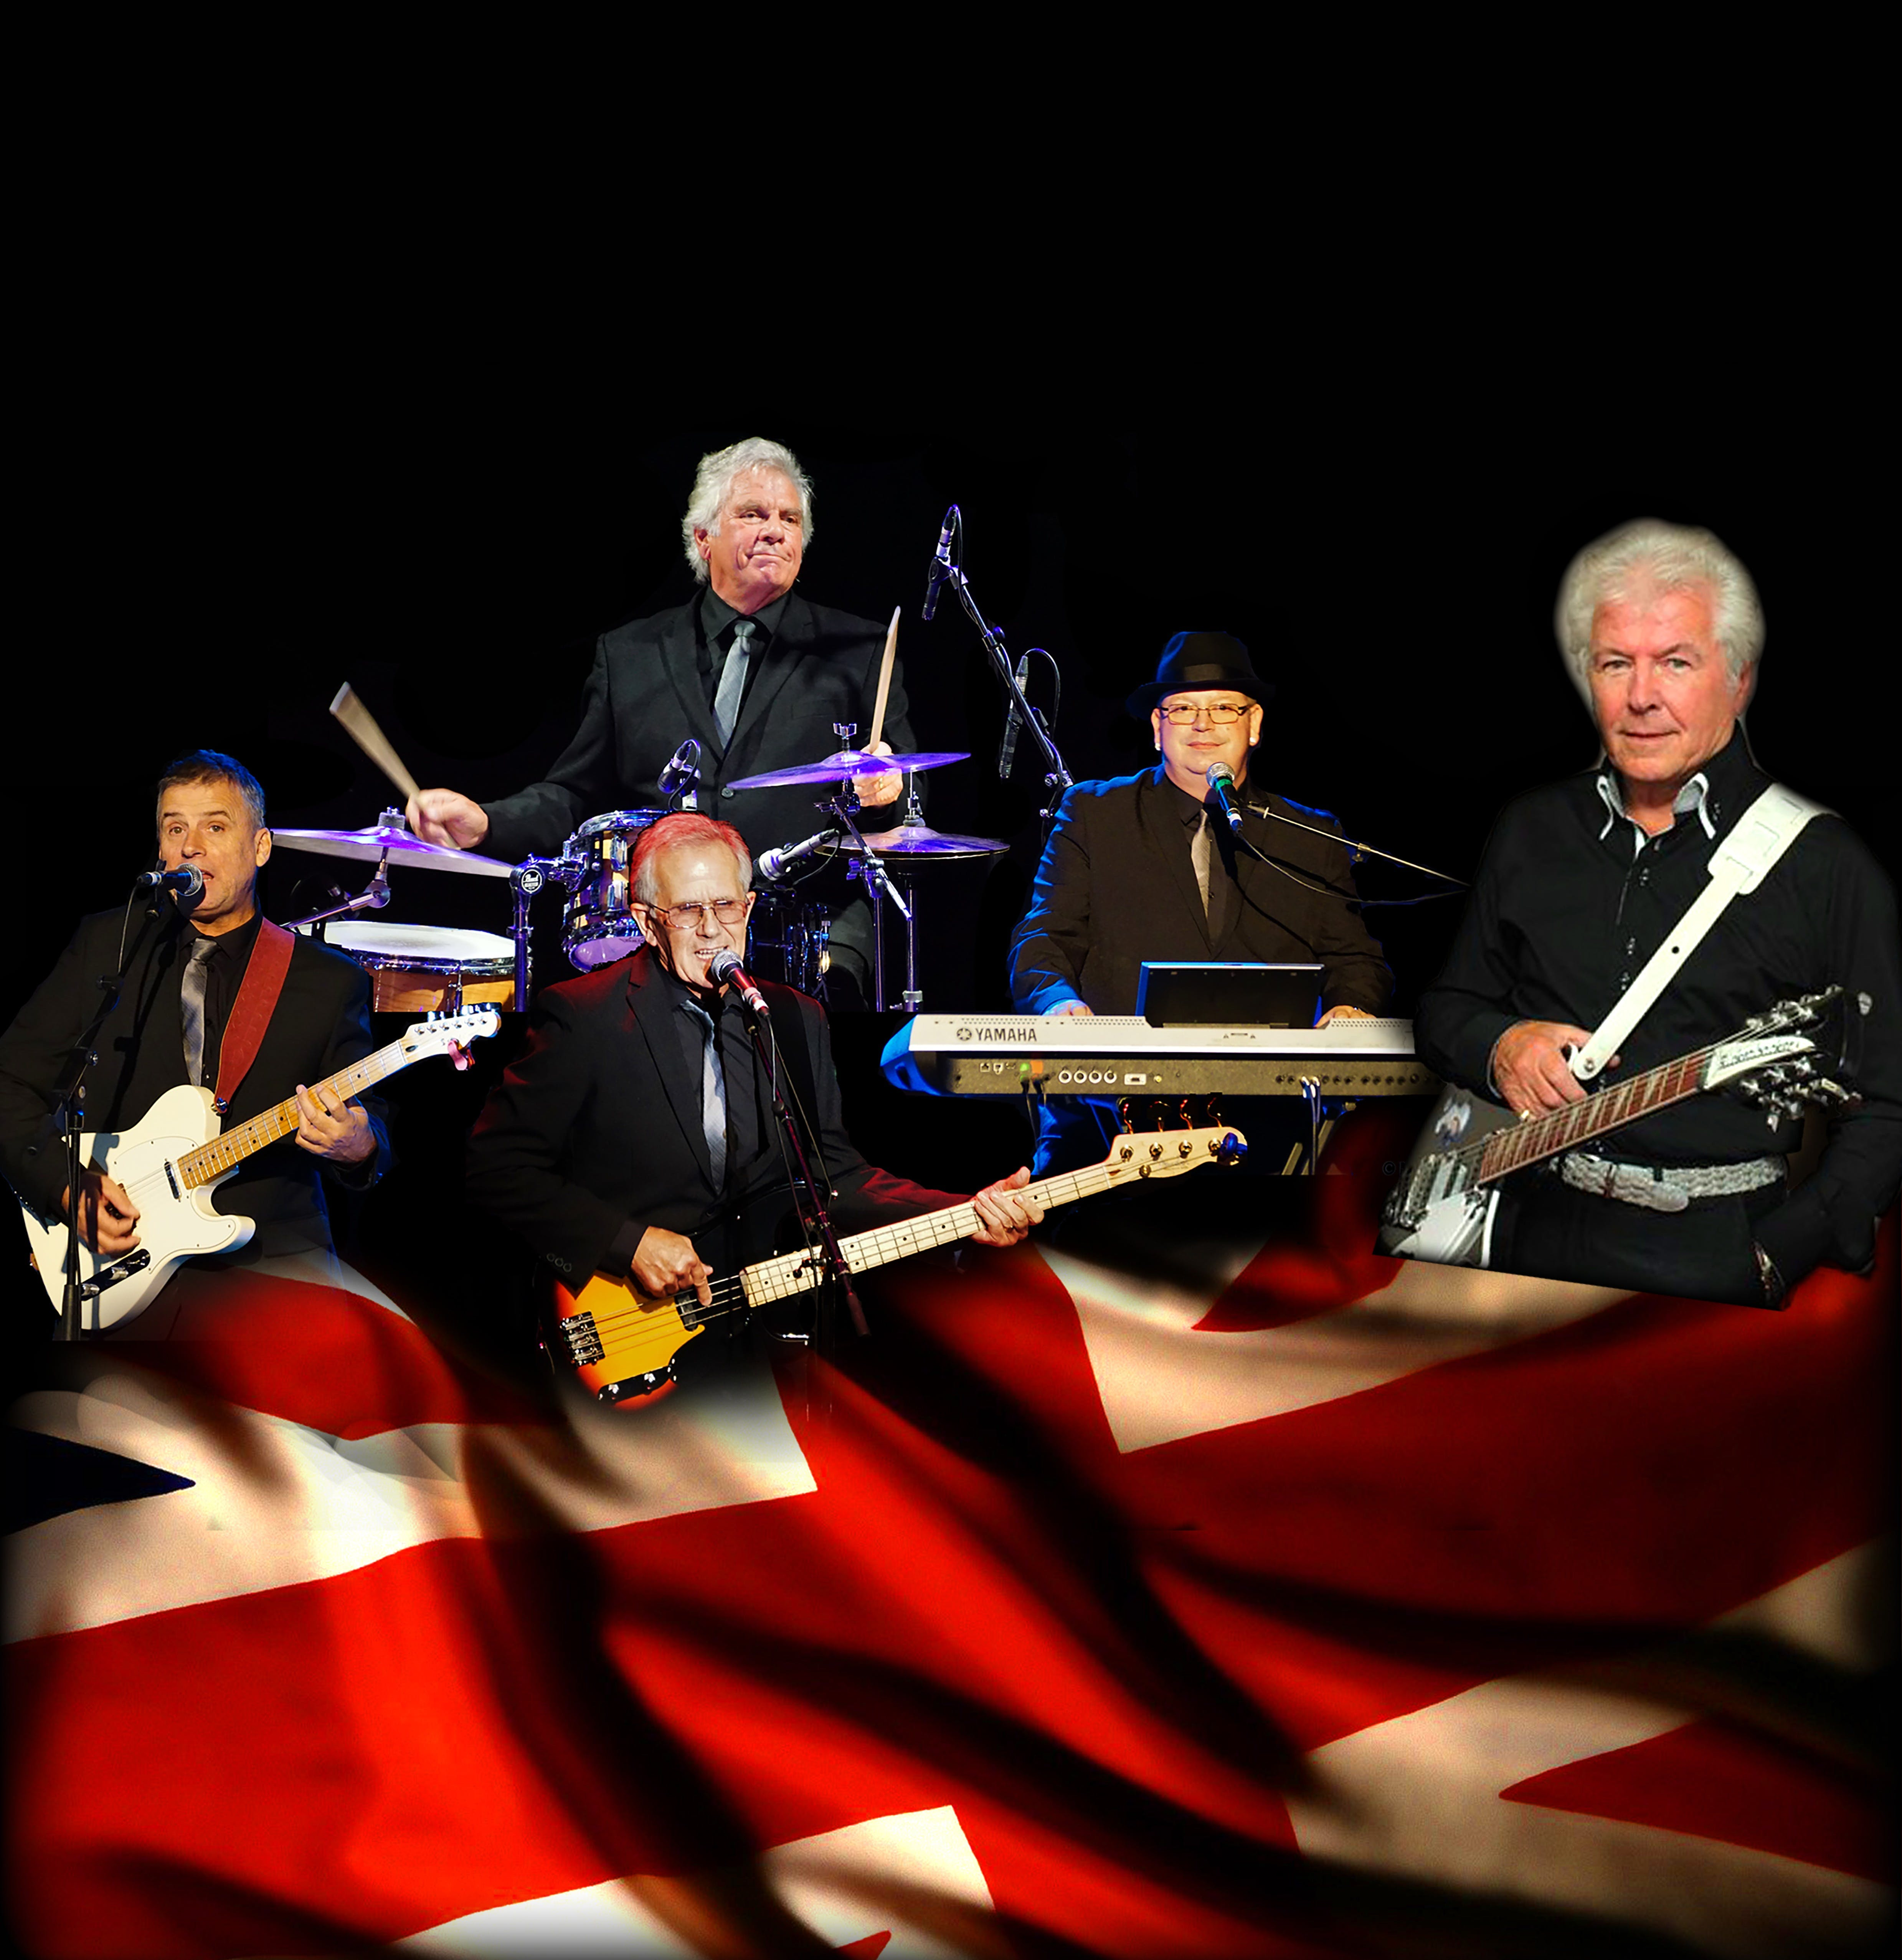 Herman's Hermits with Special Guest Mike Pender - The Six O'Clock Hop - Accommodation in Brisbane